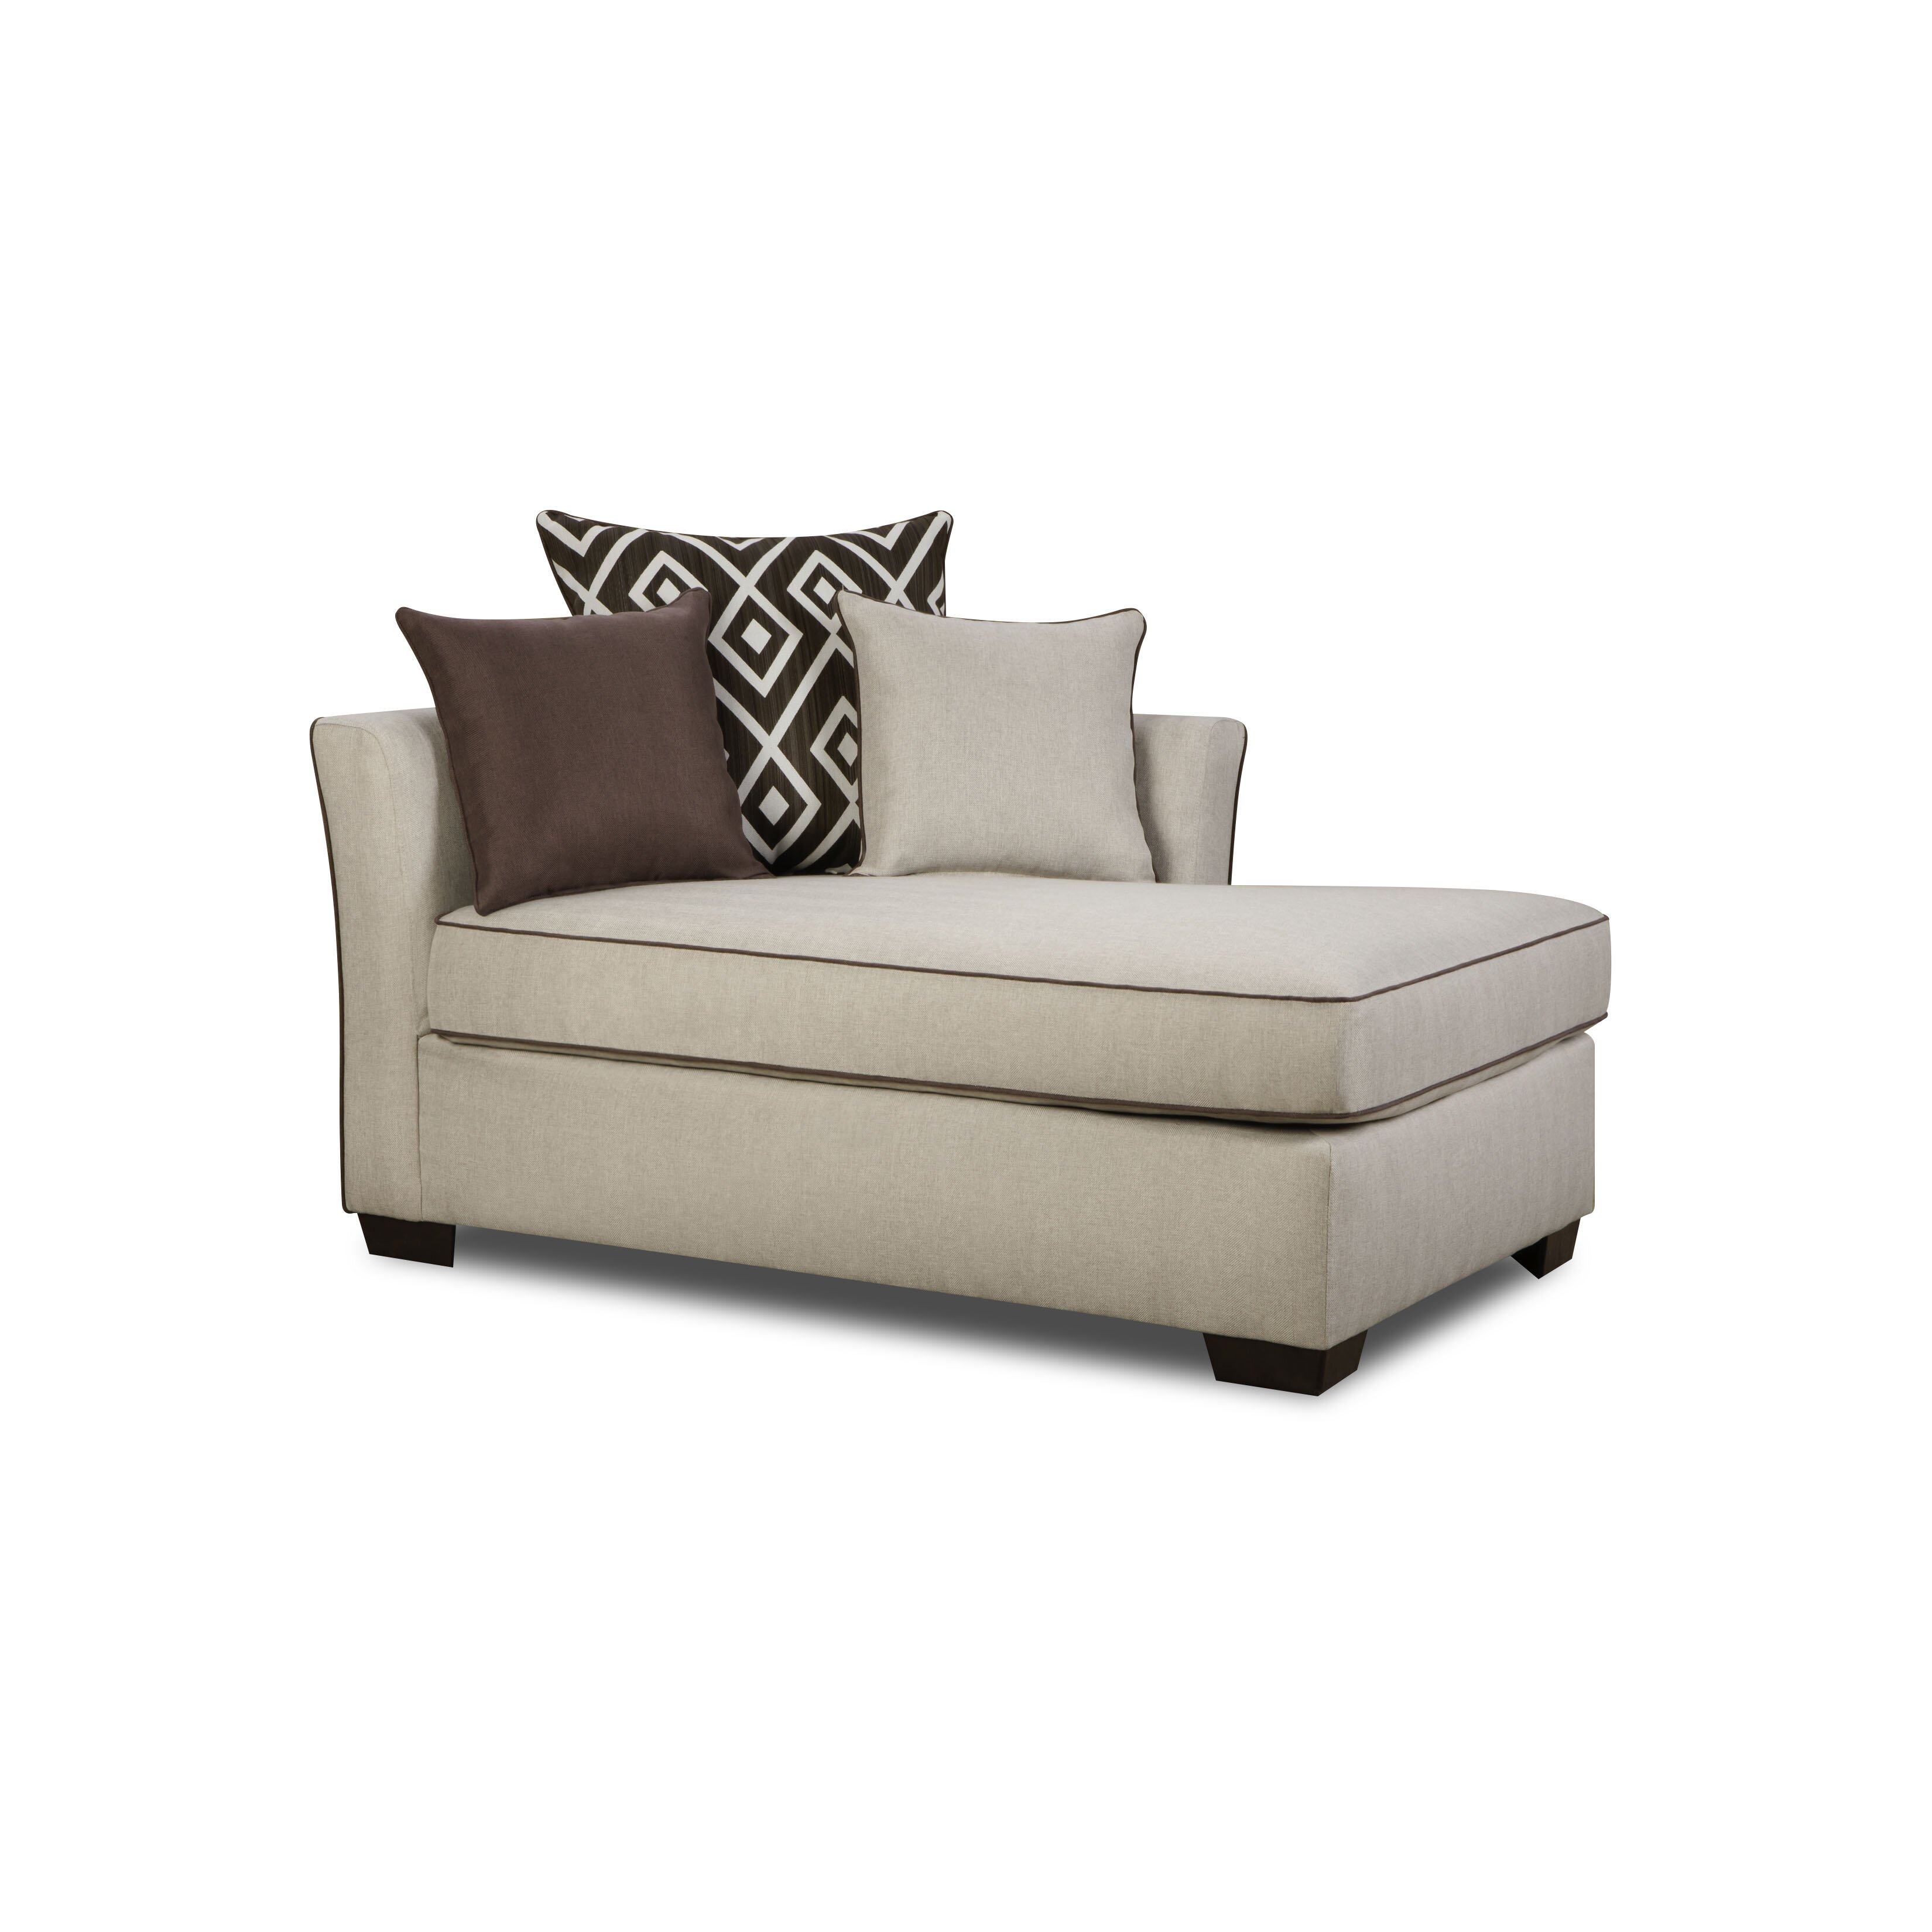 Simmons couch with chaise latitude run simmons upholstery for Albany saturn sectional sofa chaise